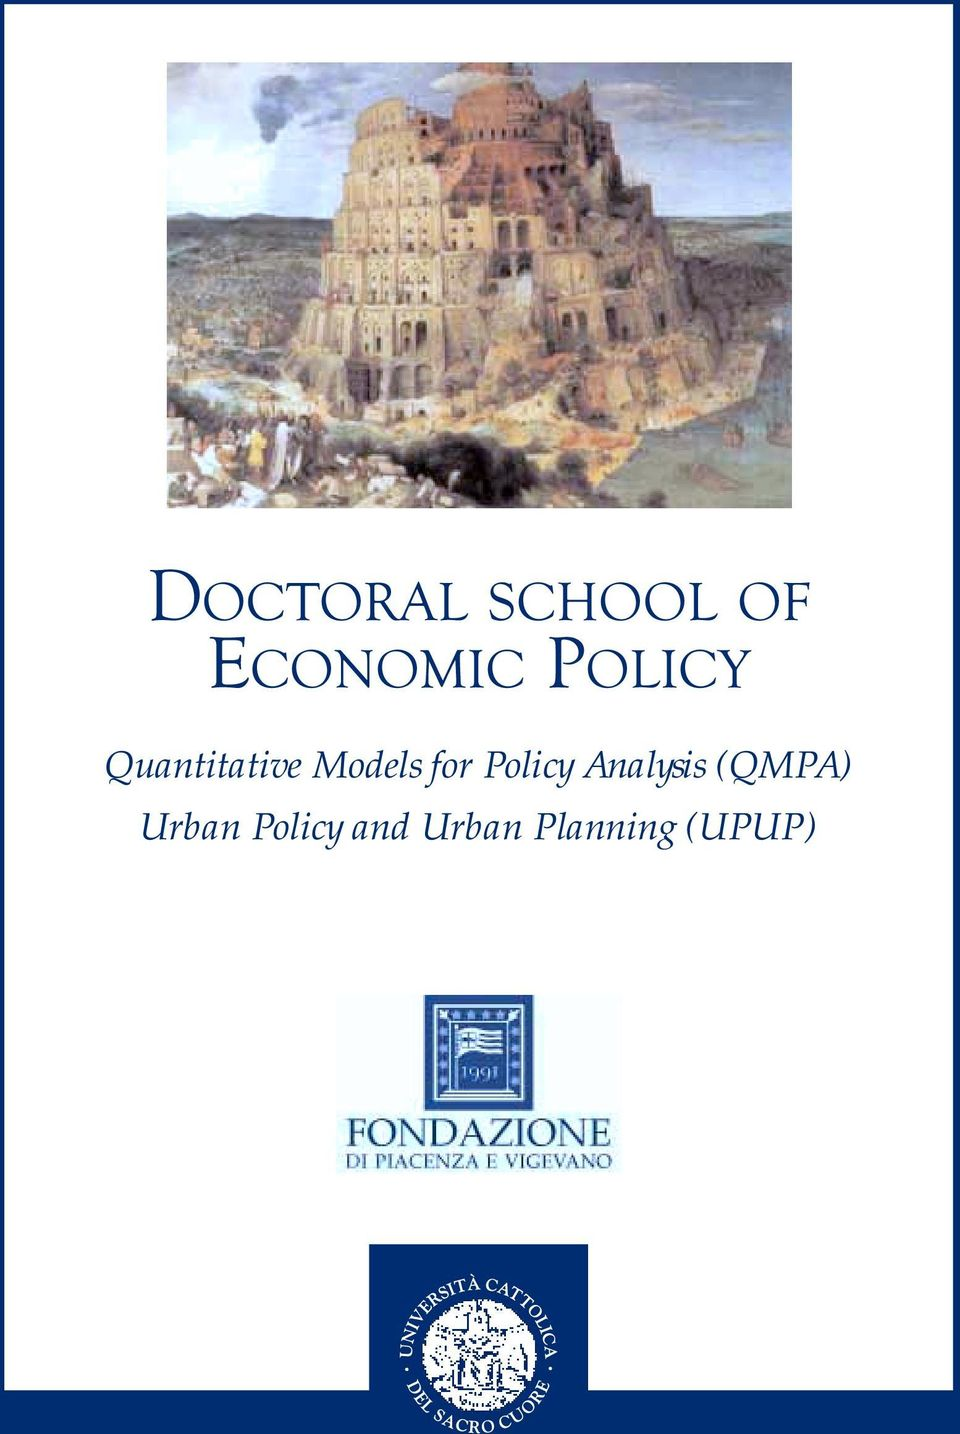 for Policy Analysis (QMPA)